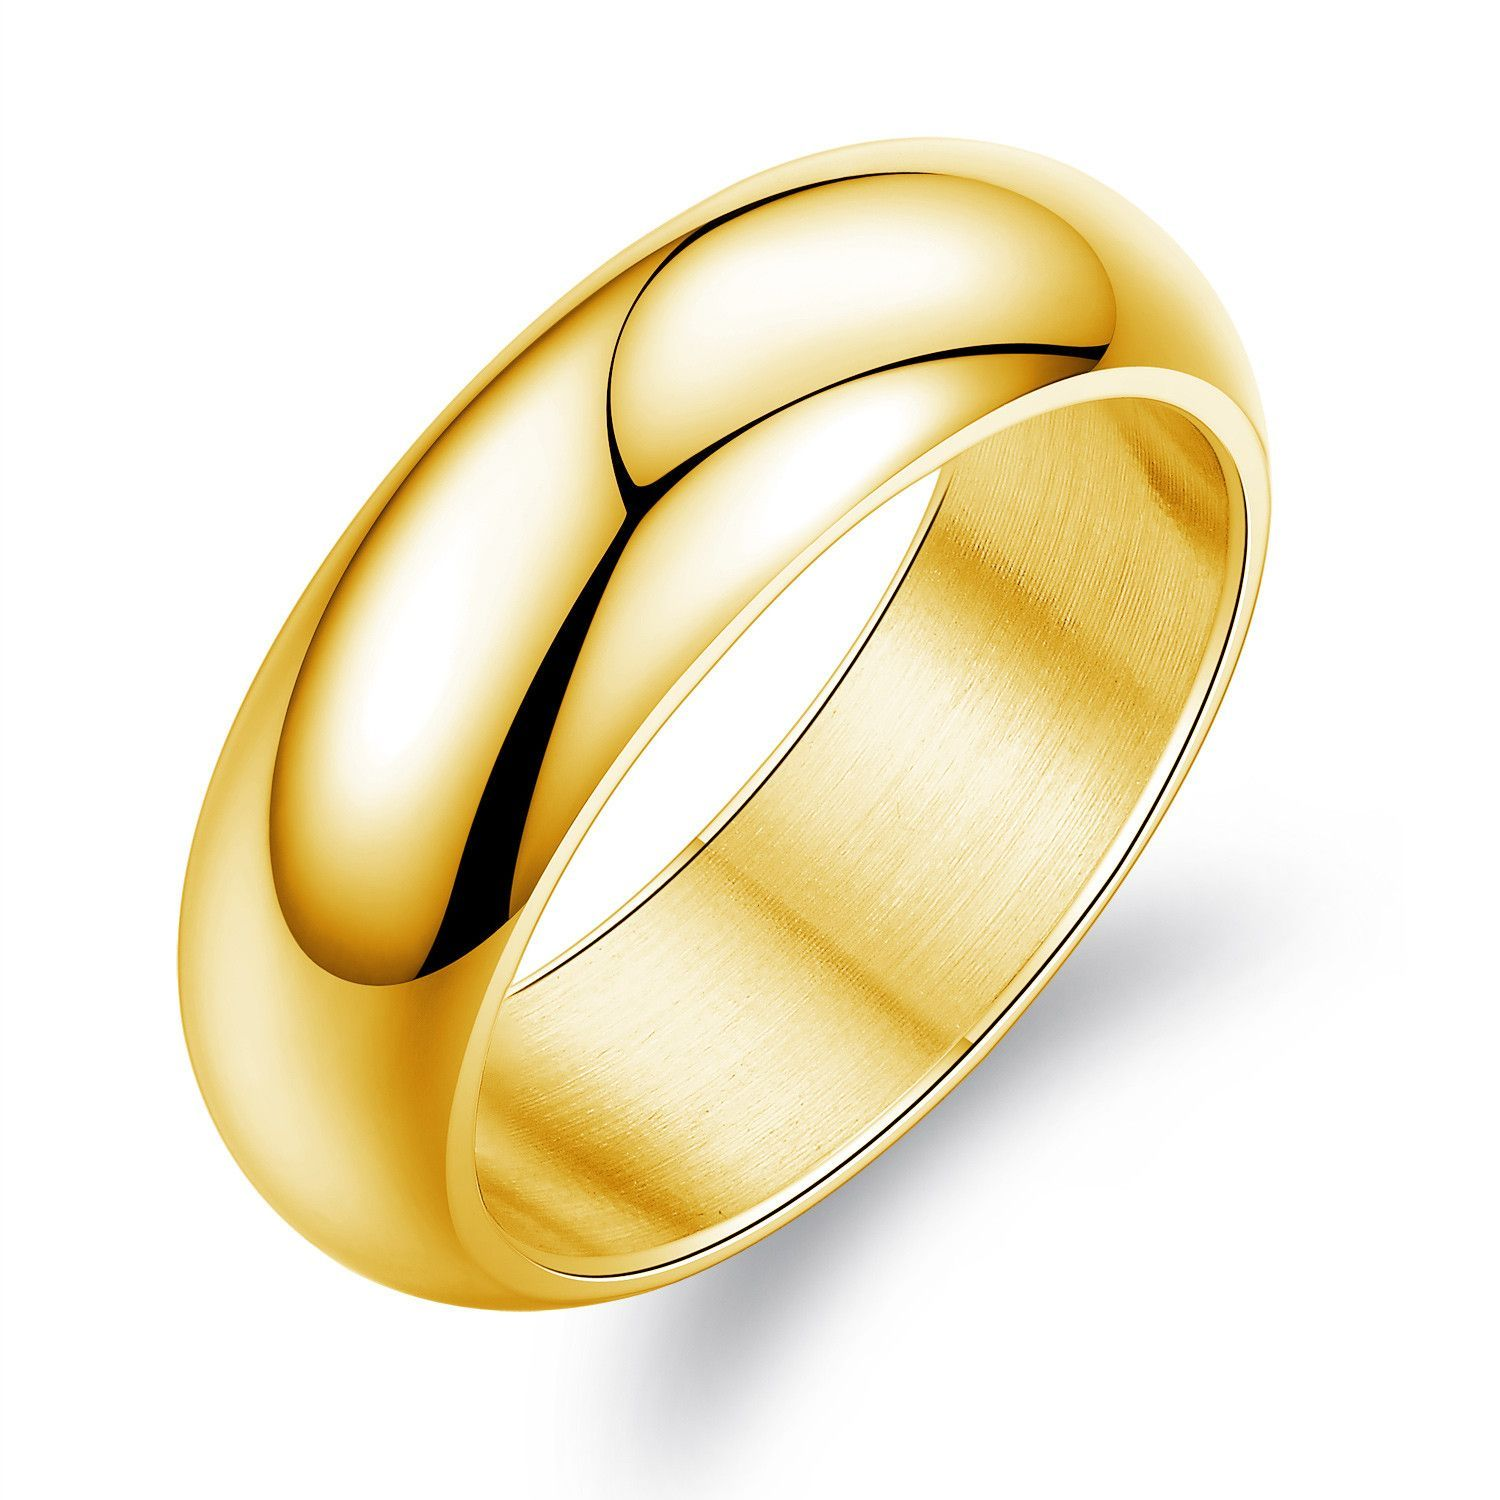 gold store silver jewelry product opening korean undefined rings ring couple